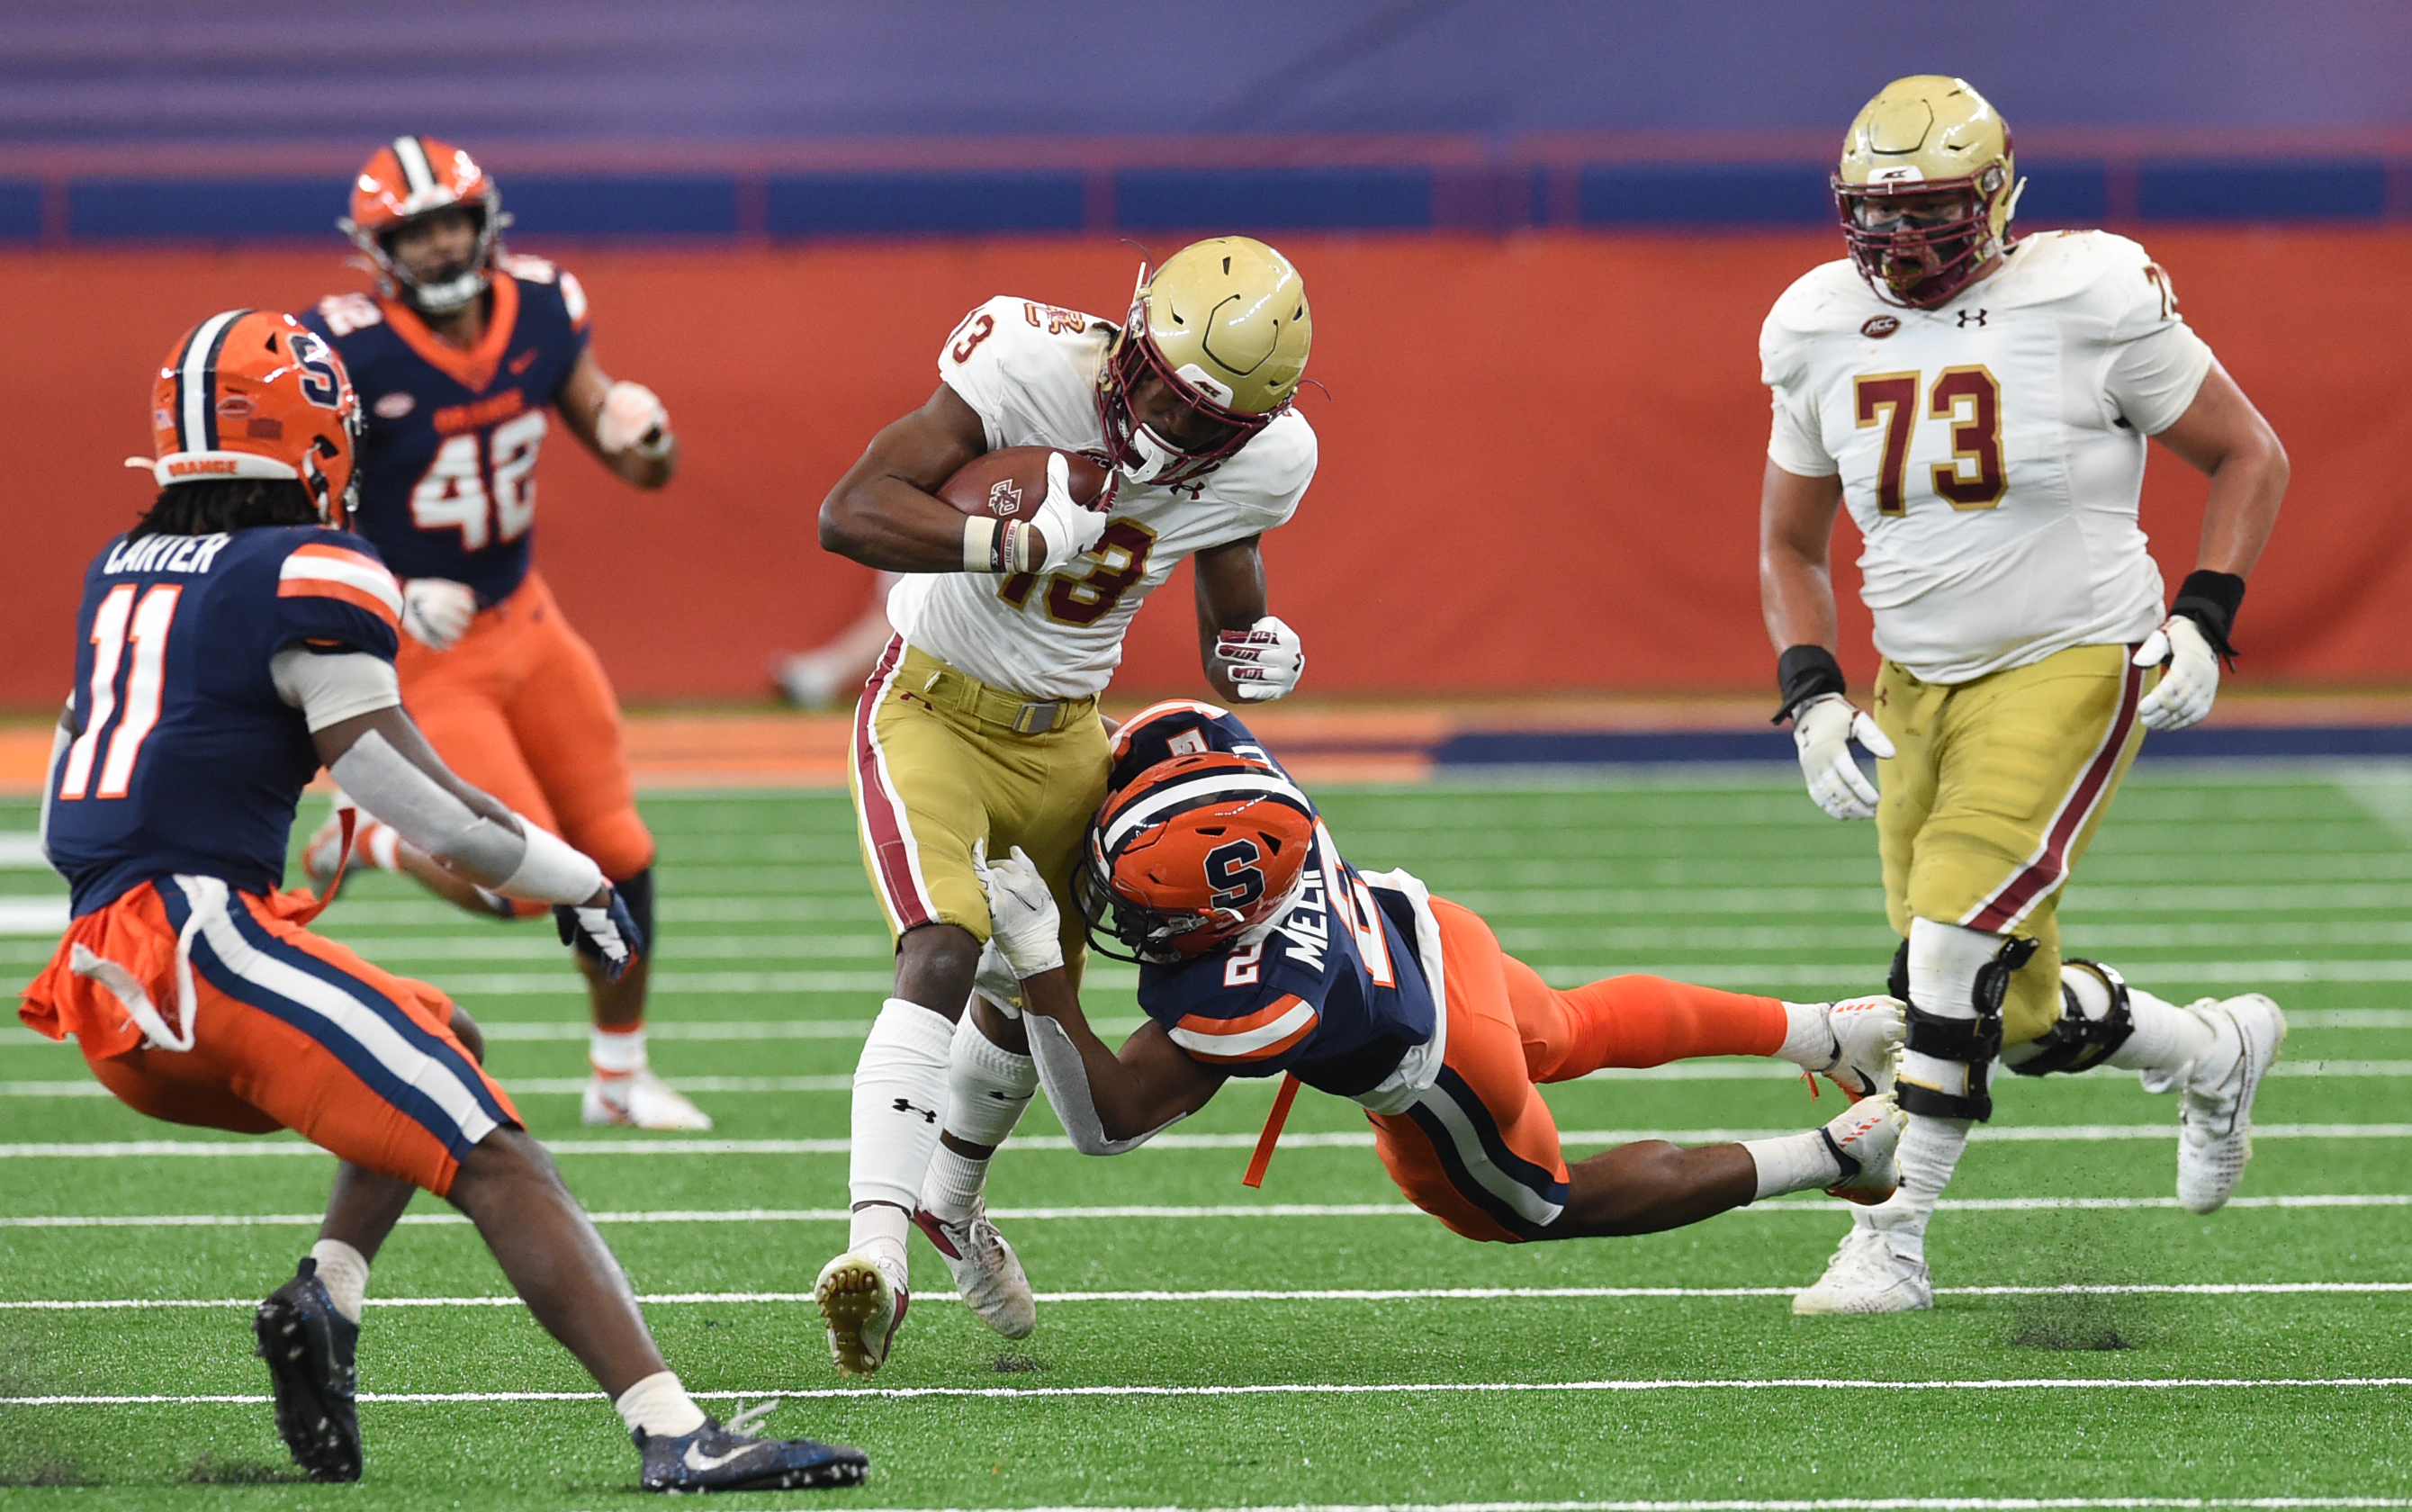 Boston College Eagles wide receiver Jehlani Galloway (13) is tackled by Syracuse Orange defensive back Ifeatu Melifonwu (2) during a game on Saturday, Nov. 7, 2020, at the Carrier Dome in Syracuse, N.Y.